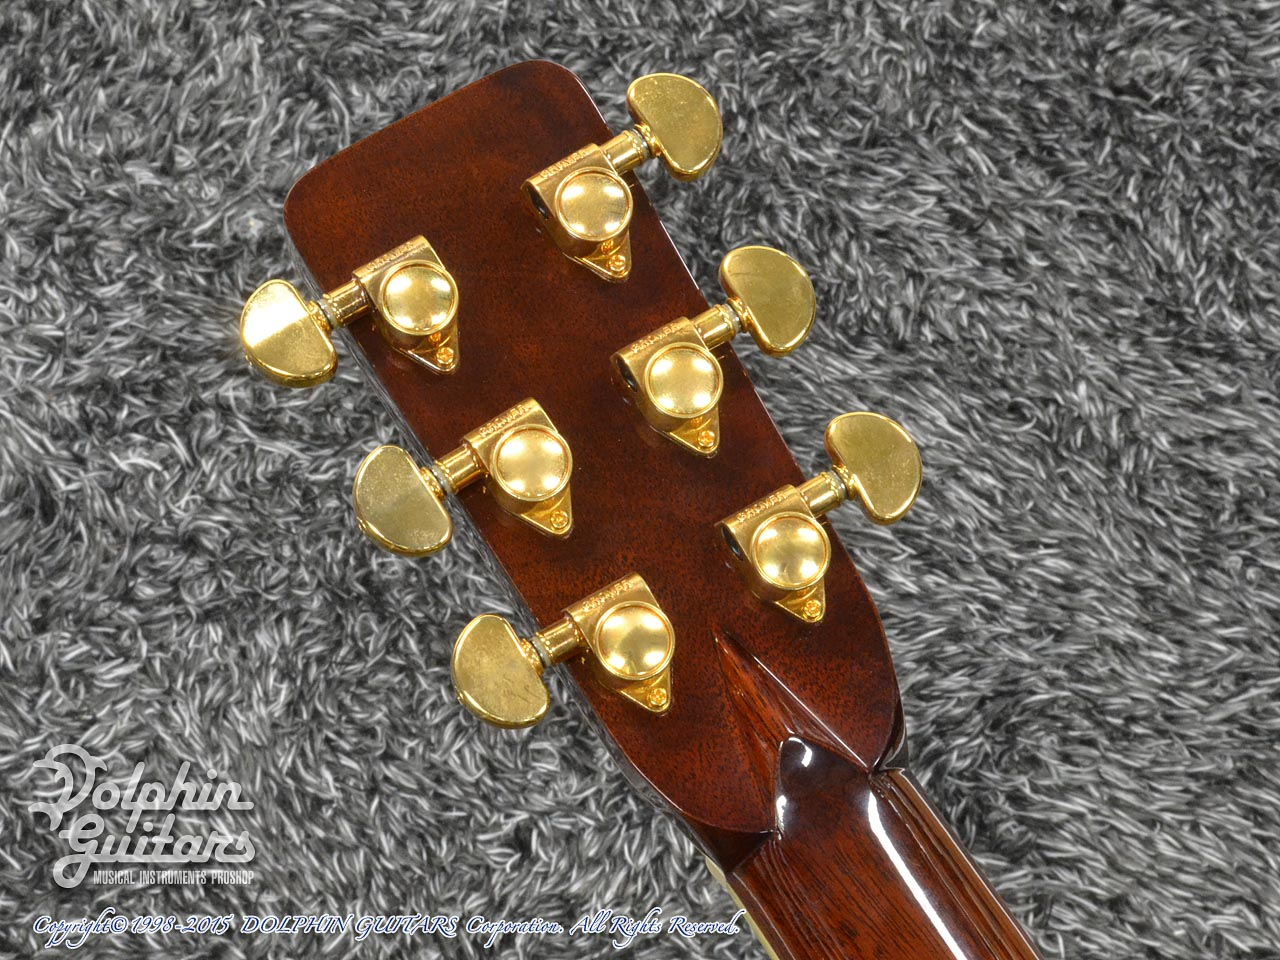 C.F.MARTIN: 1968's Style D-45 (1965 D-28 Conversion) by SUMI (7)